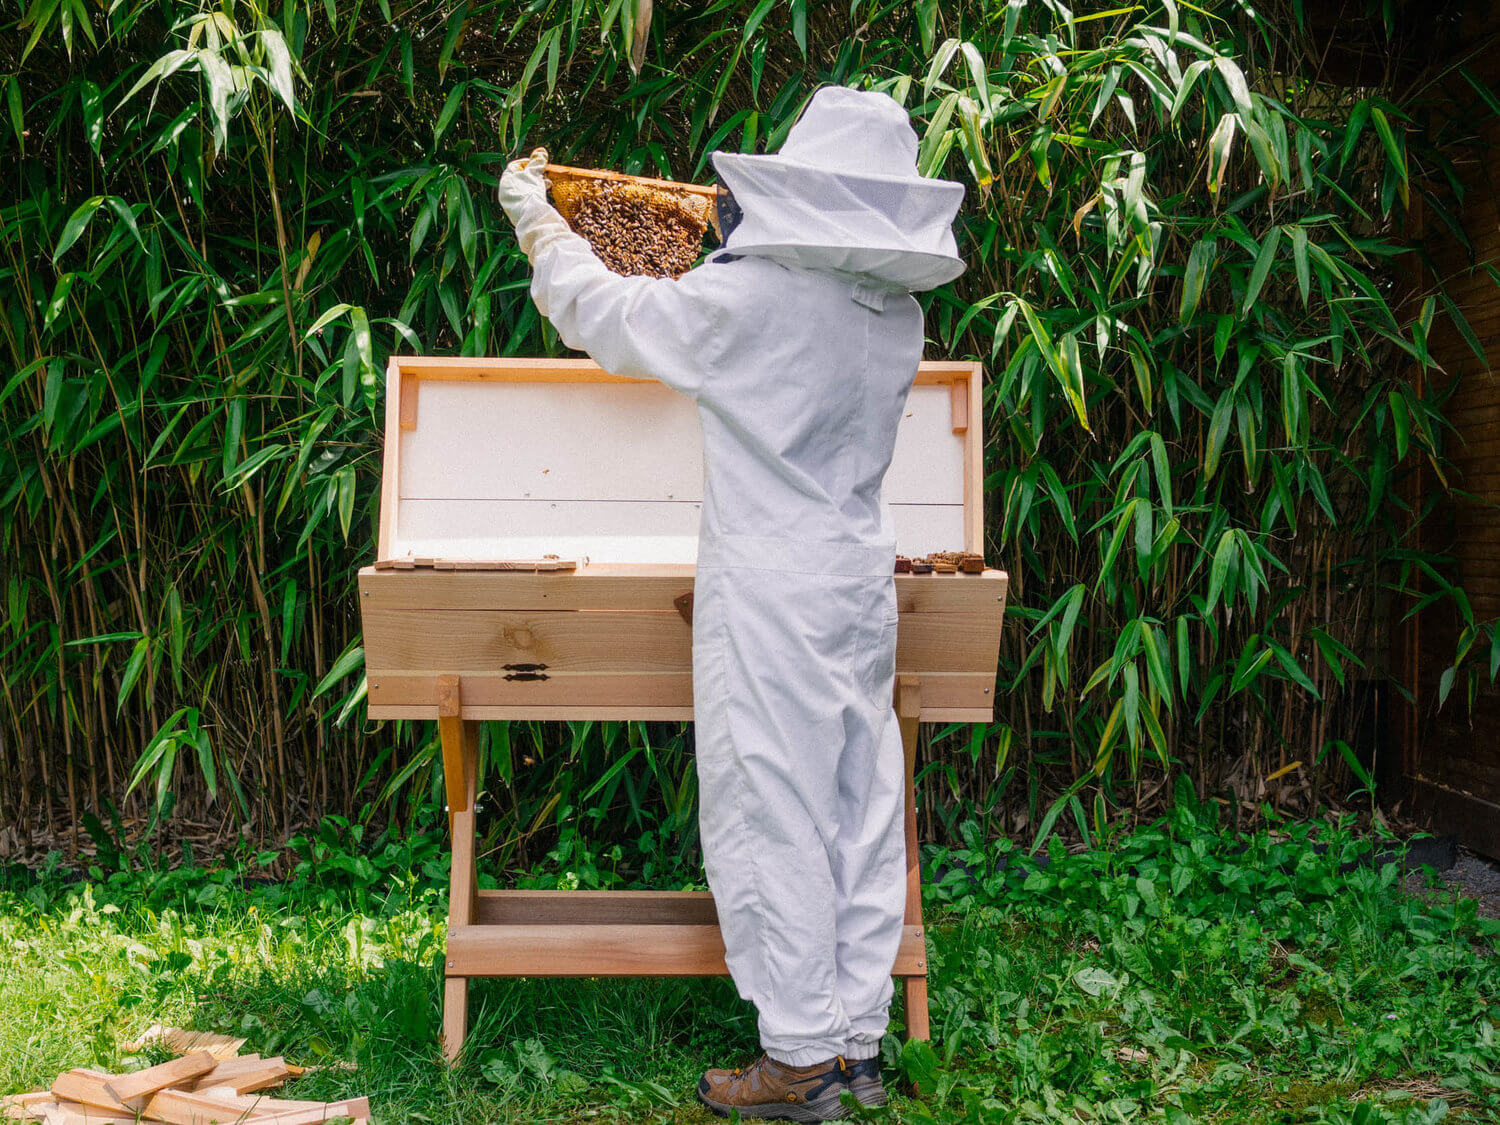 Video: 'We're saving the wrong bees' — Journalist argues that focusing concern on 'backyard bees' undercuts effort to save wild populations responsible for most crop pollination